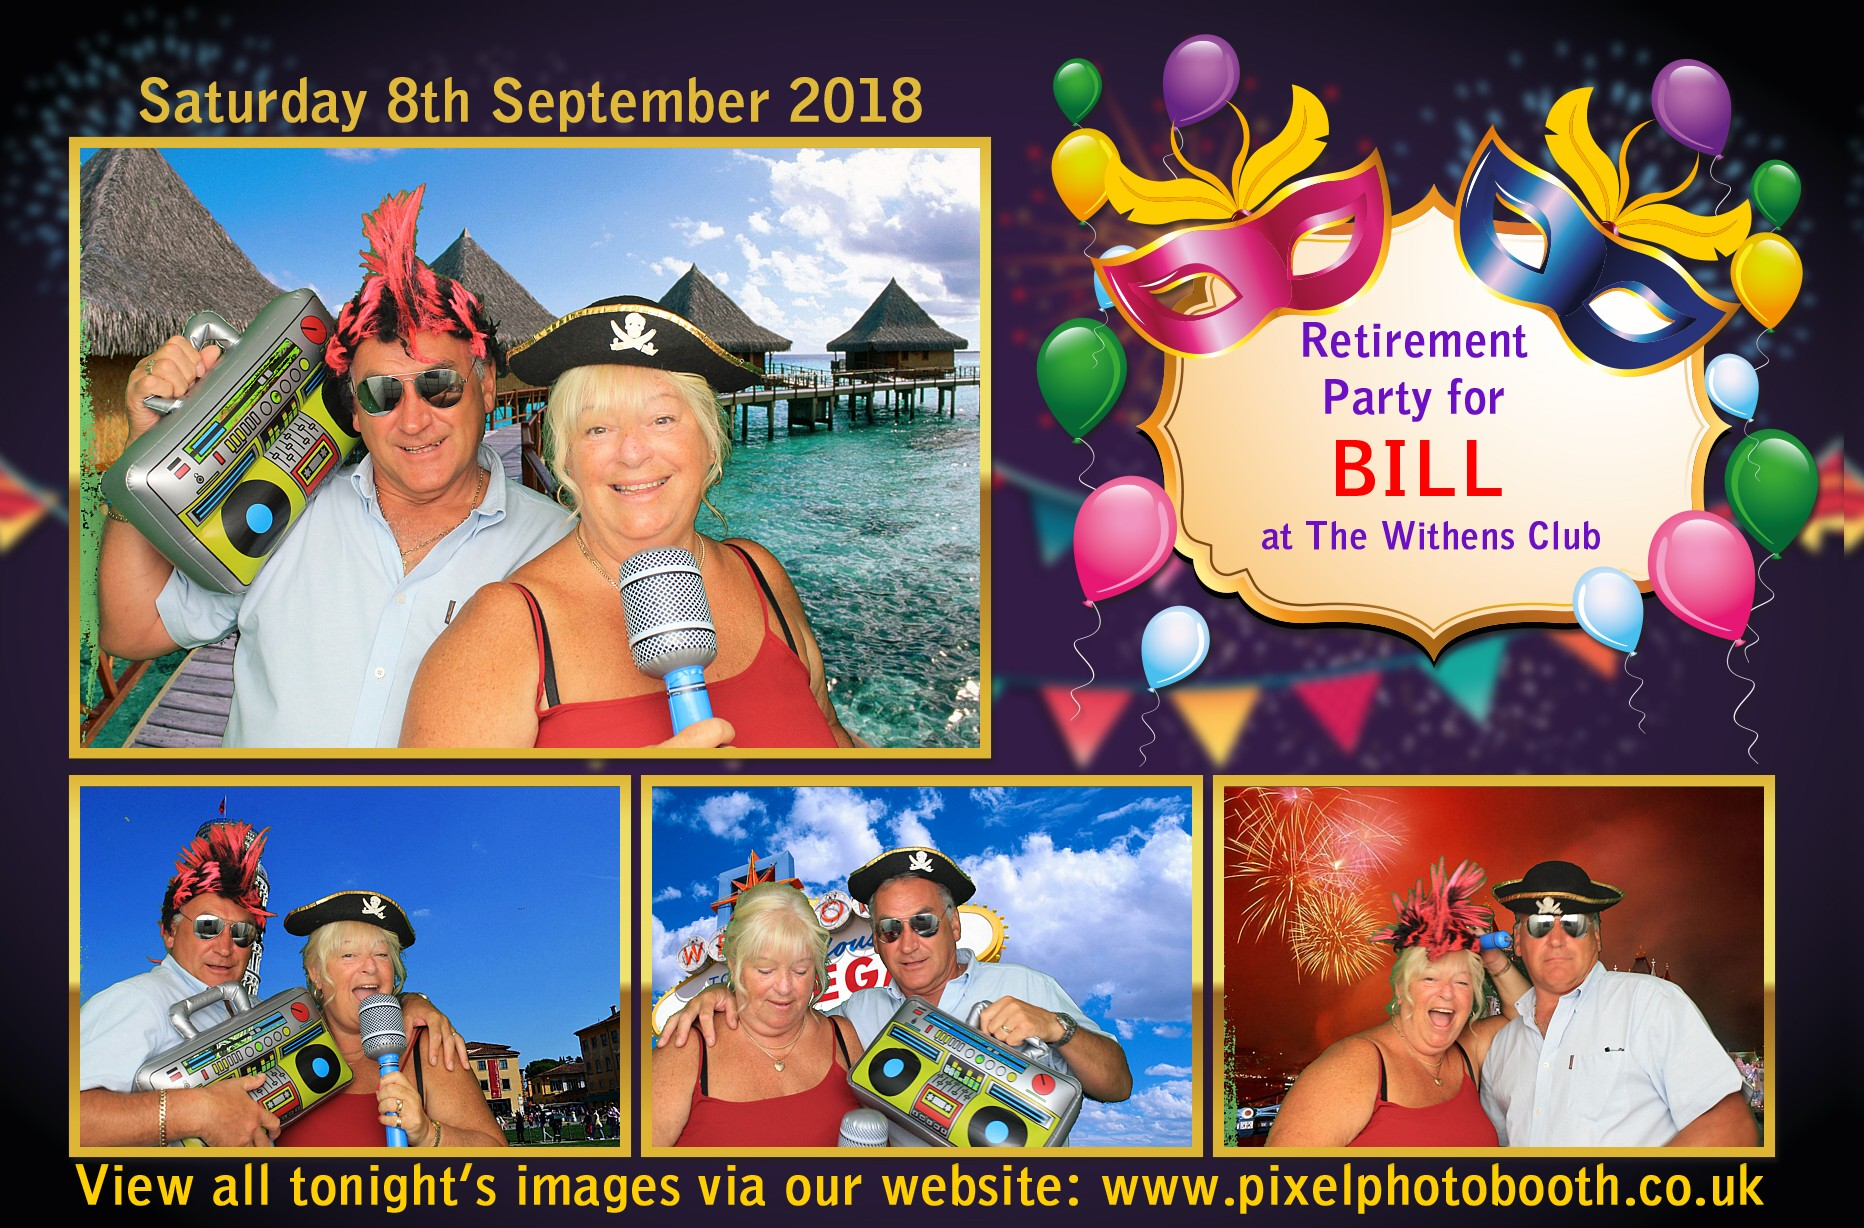 8th Sept 2018: Bill's Retirement Party at The Withens Club